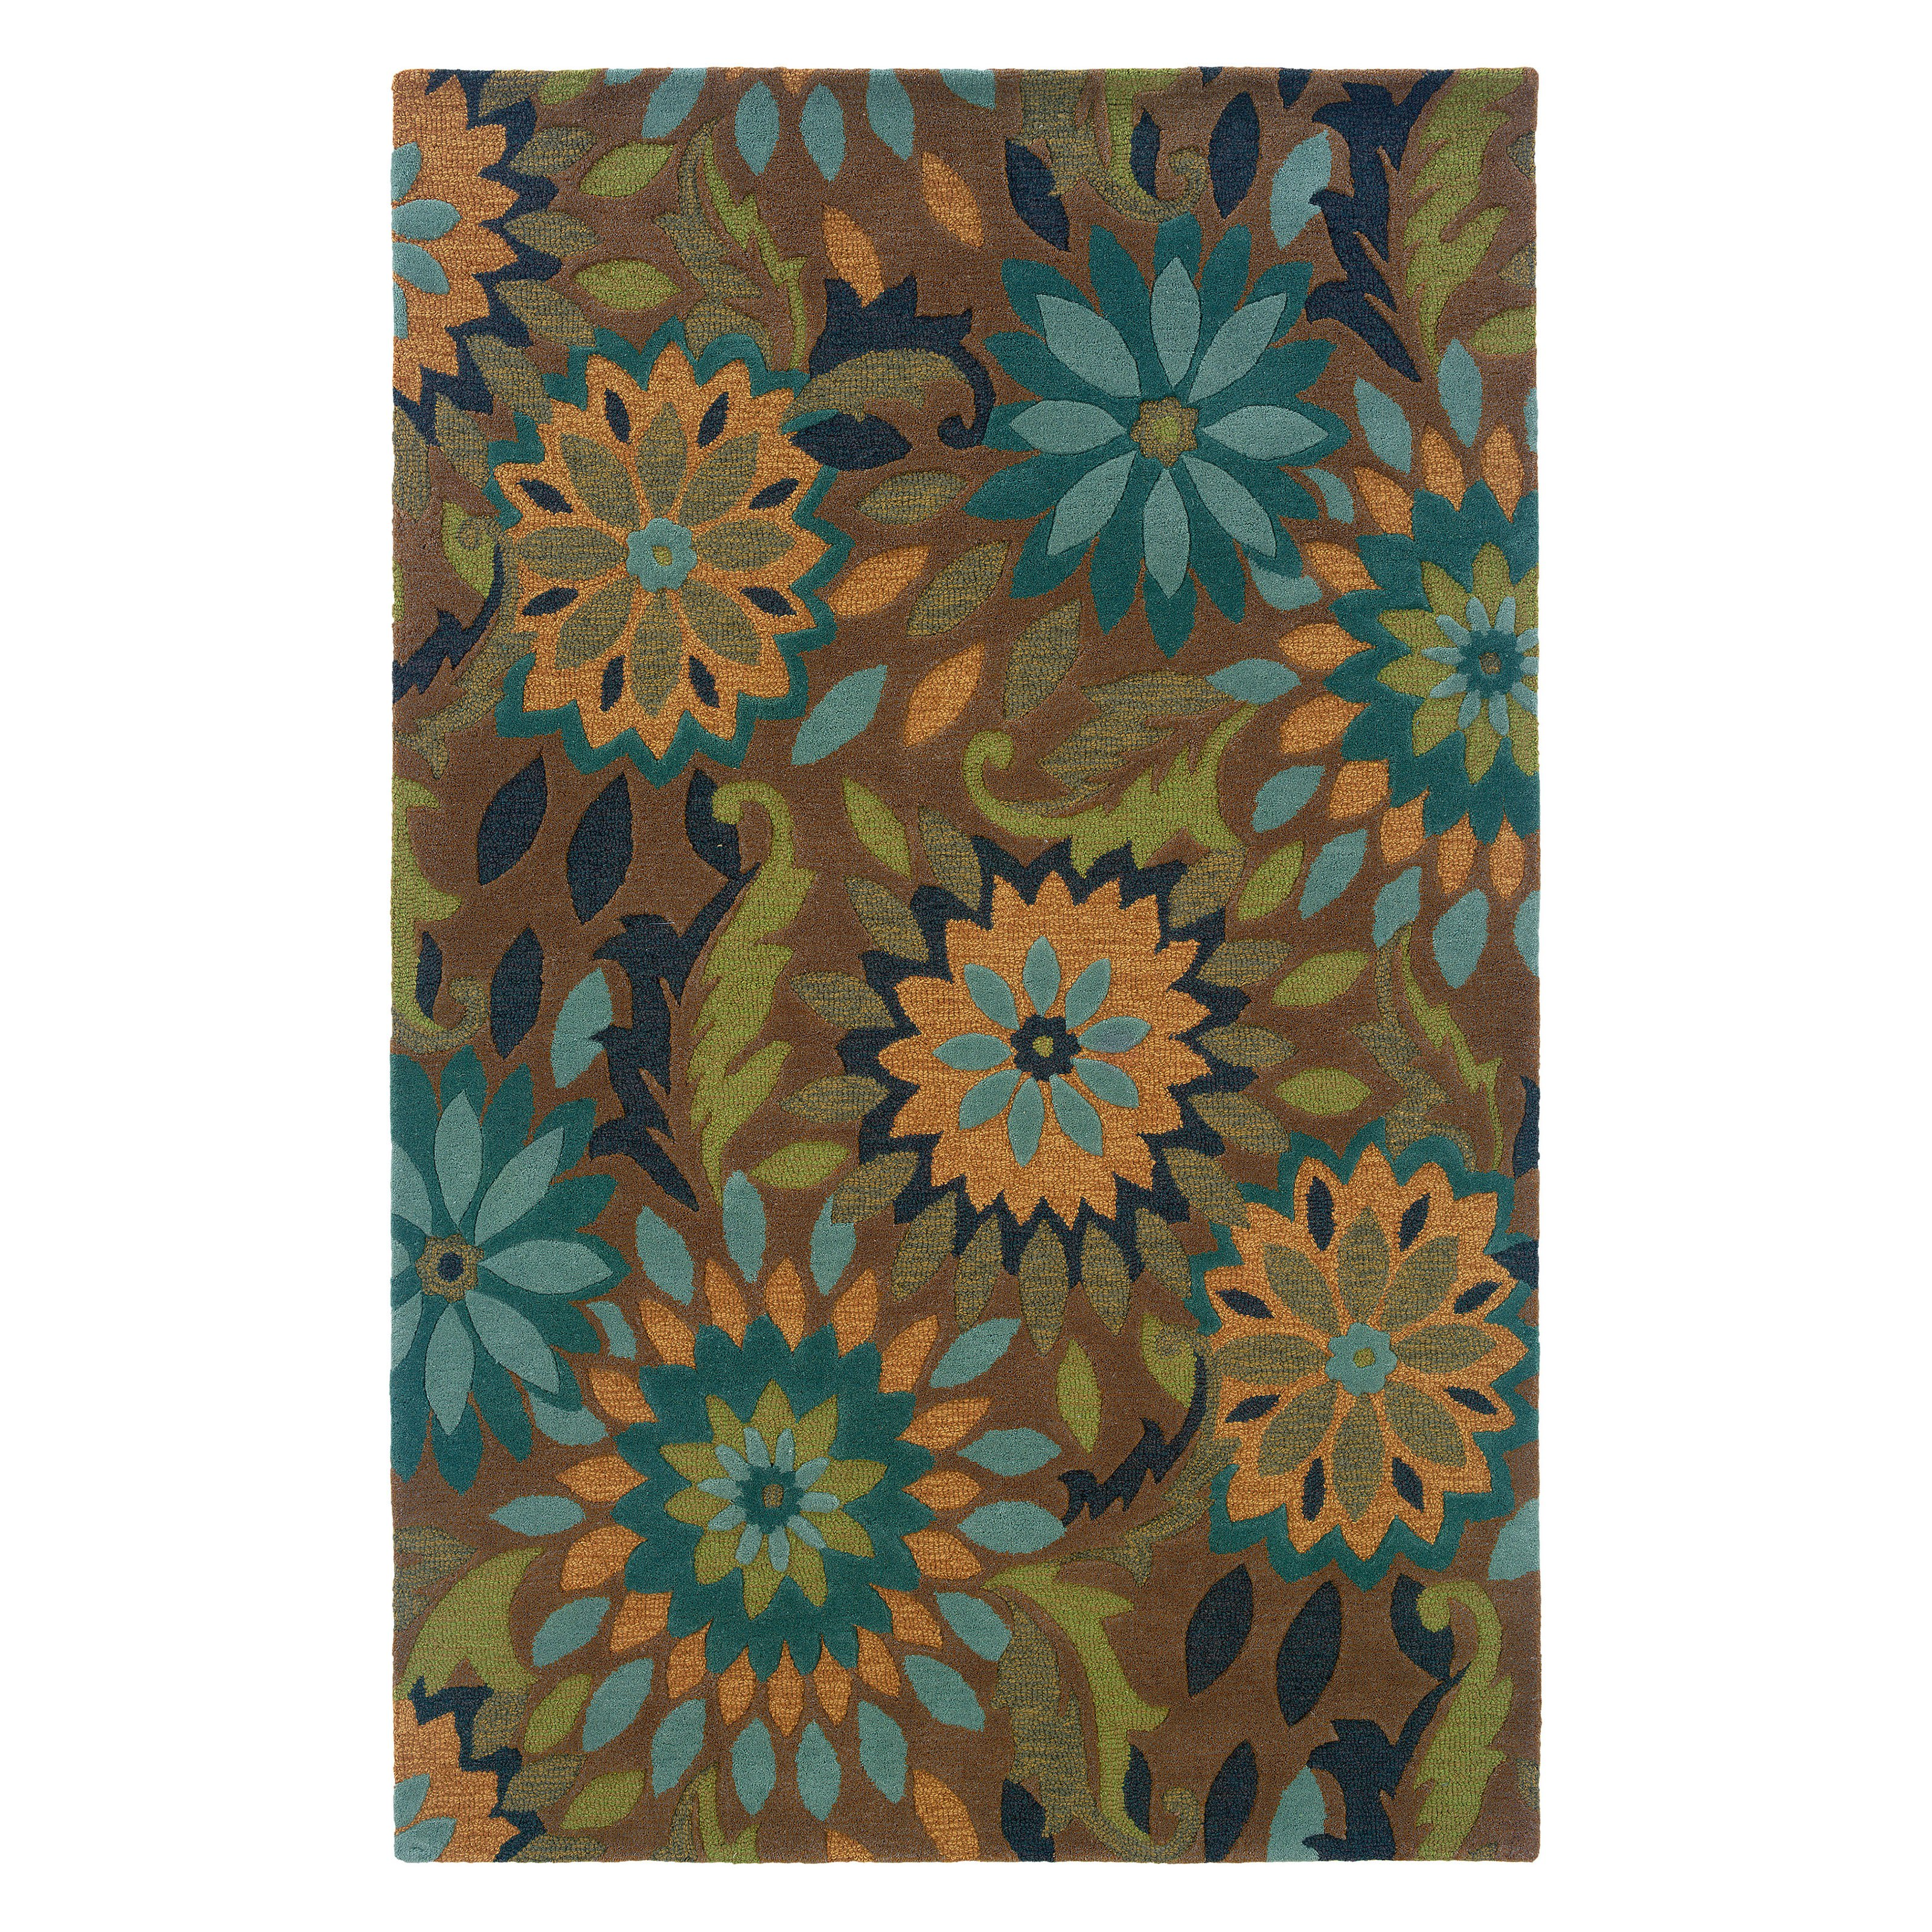 LR Resources LR03501-TA58-Dazzle Taupe Rectangle Rug 5 ft.  x 7 ft.  9 inch